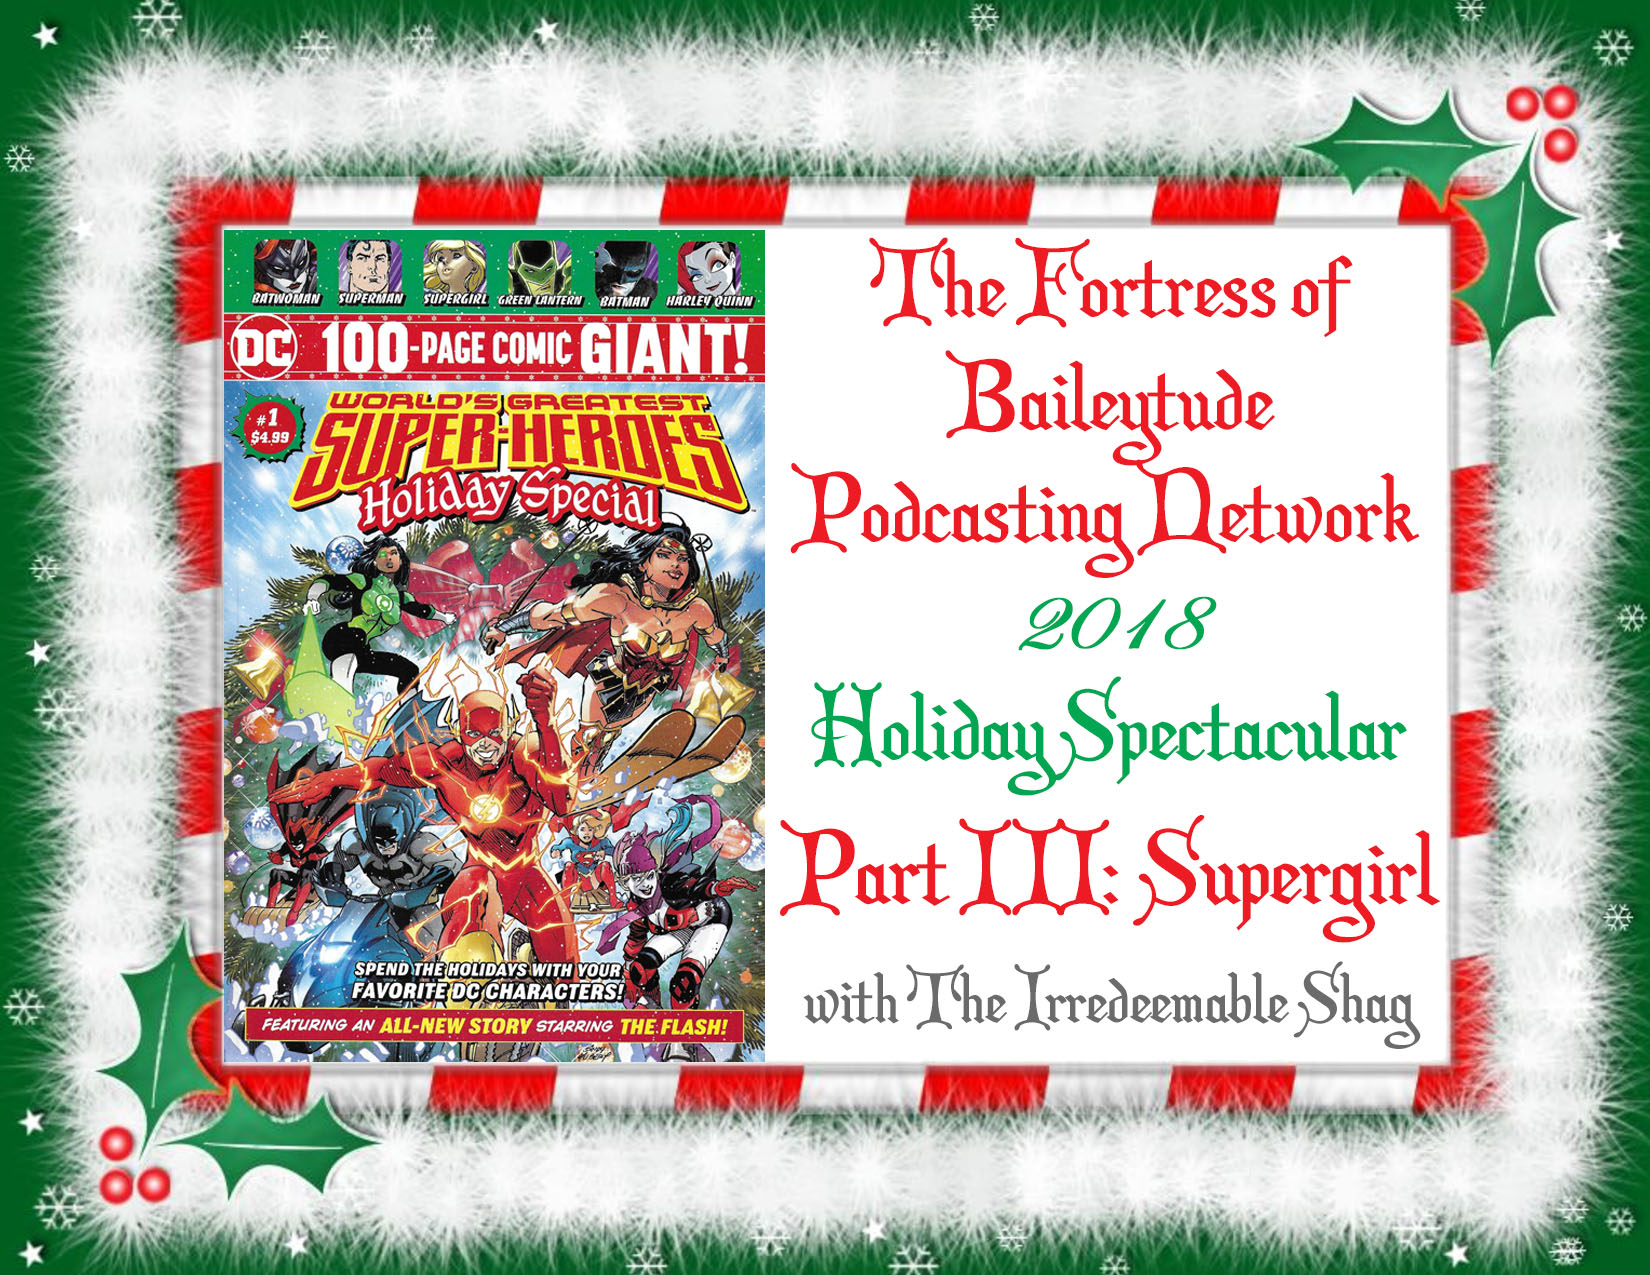 fob podcasting network 2018 holiday spectacular part 3 fortress of